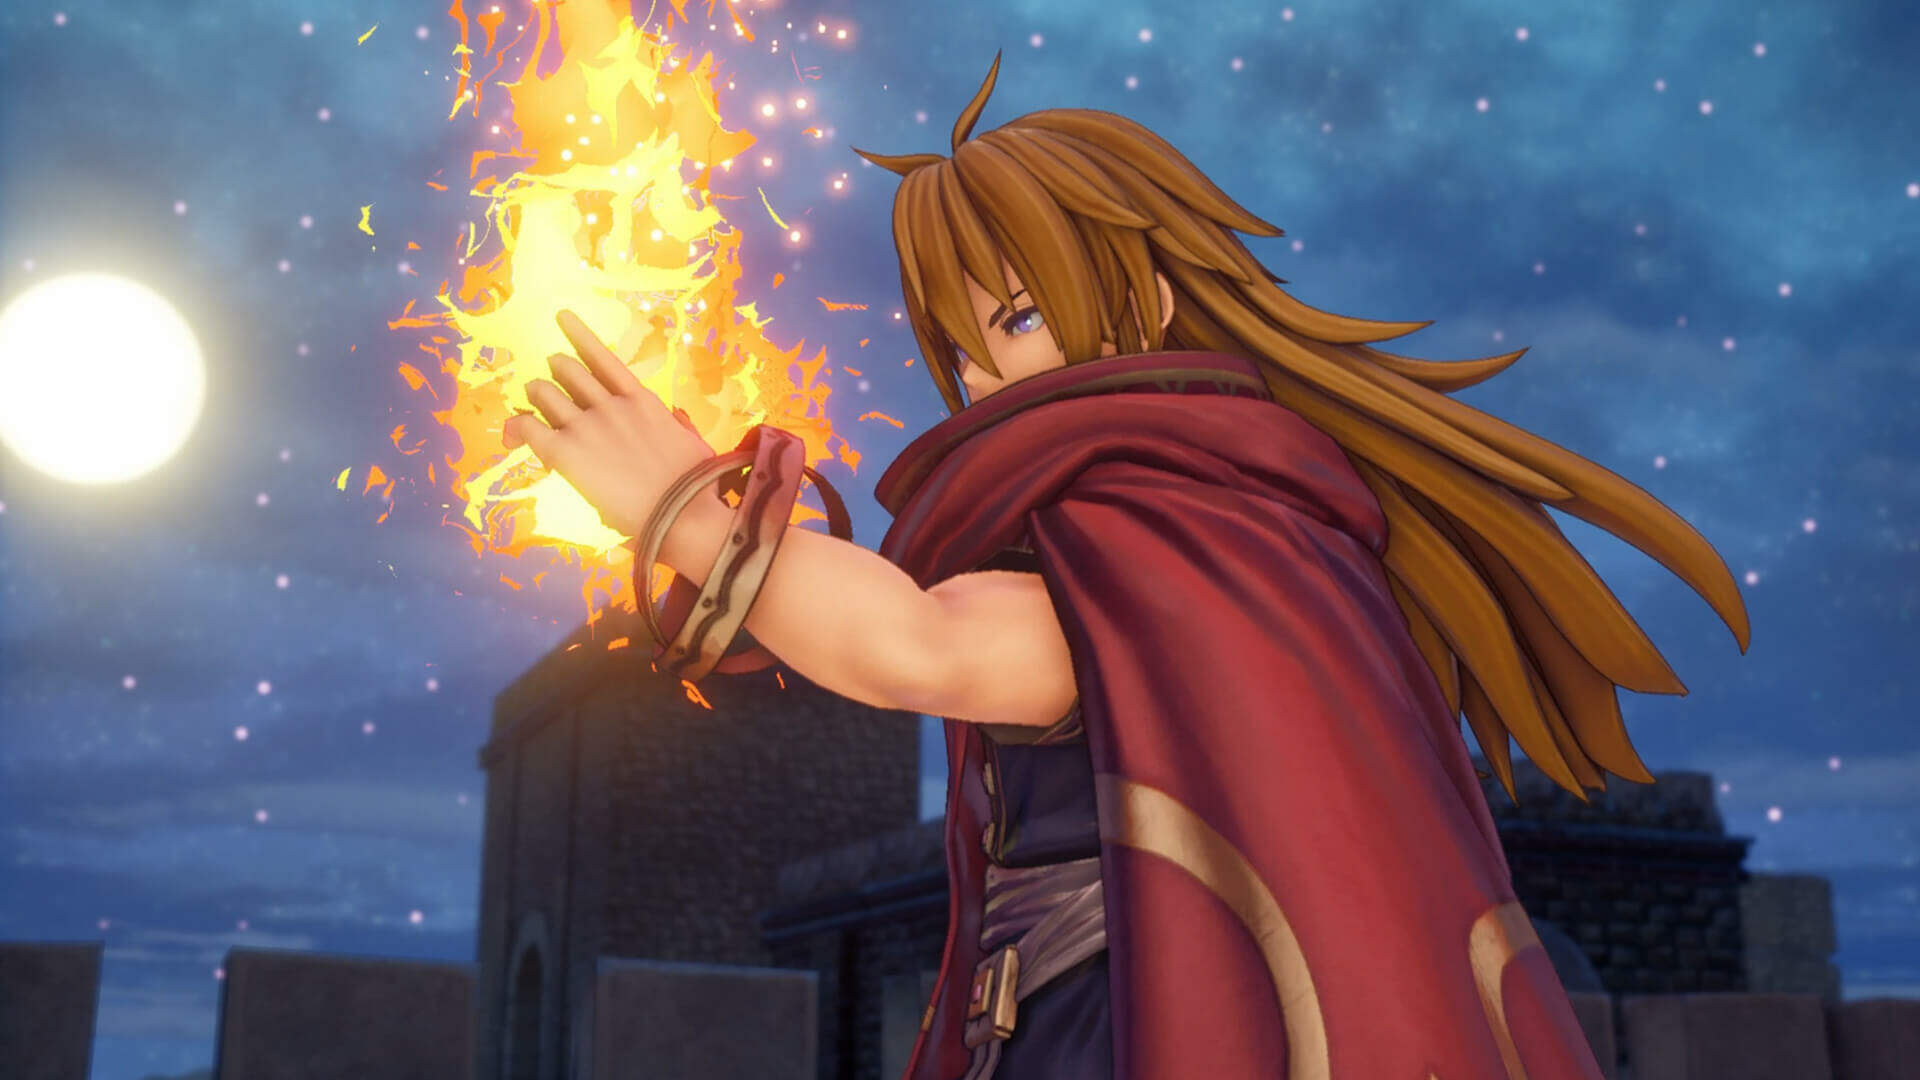 Trials of Mana Release Date, Gameplay, Trailer - Everything We Know About Seiken Densetsu 3